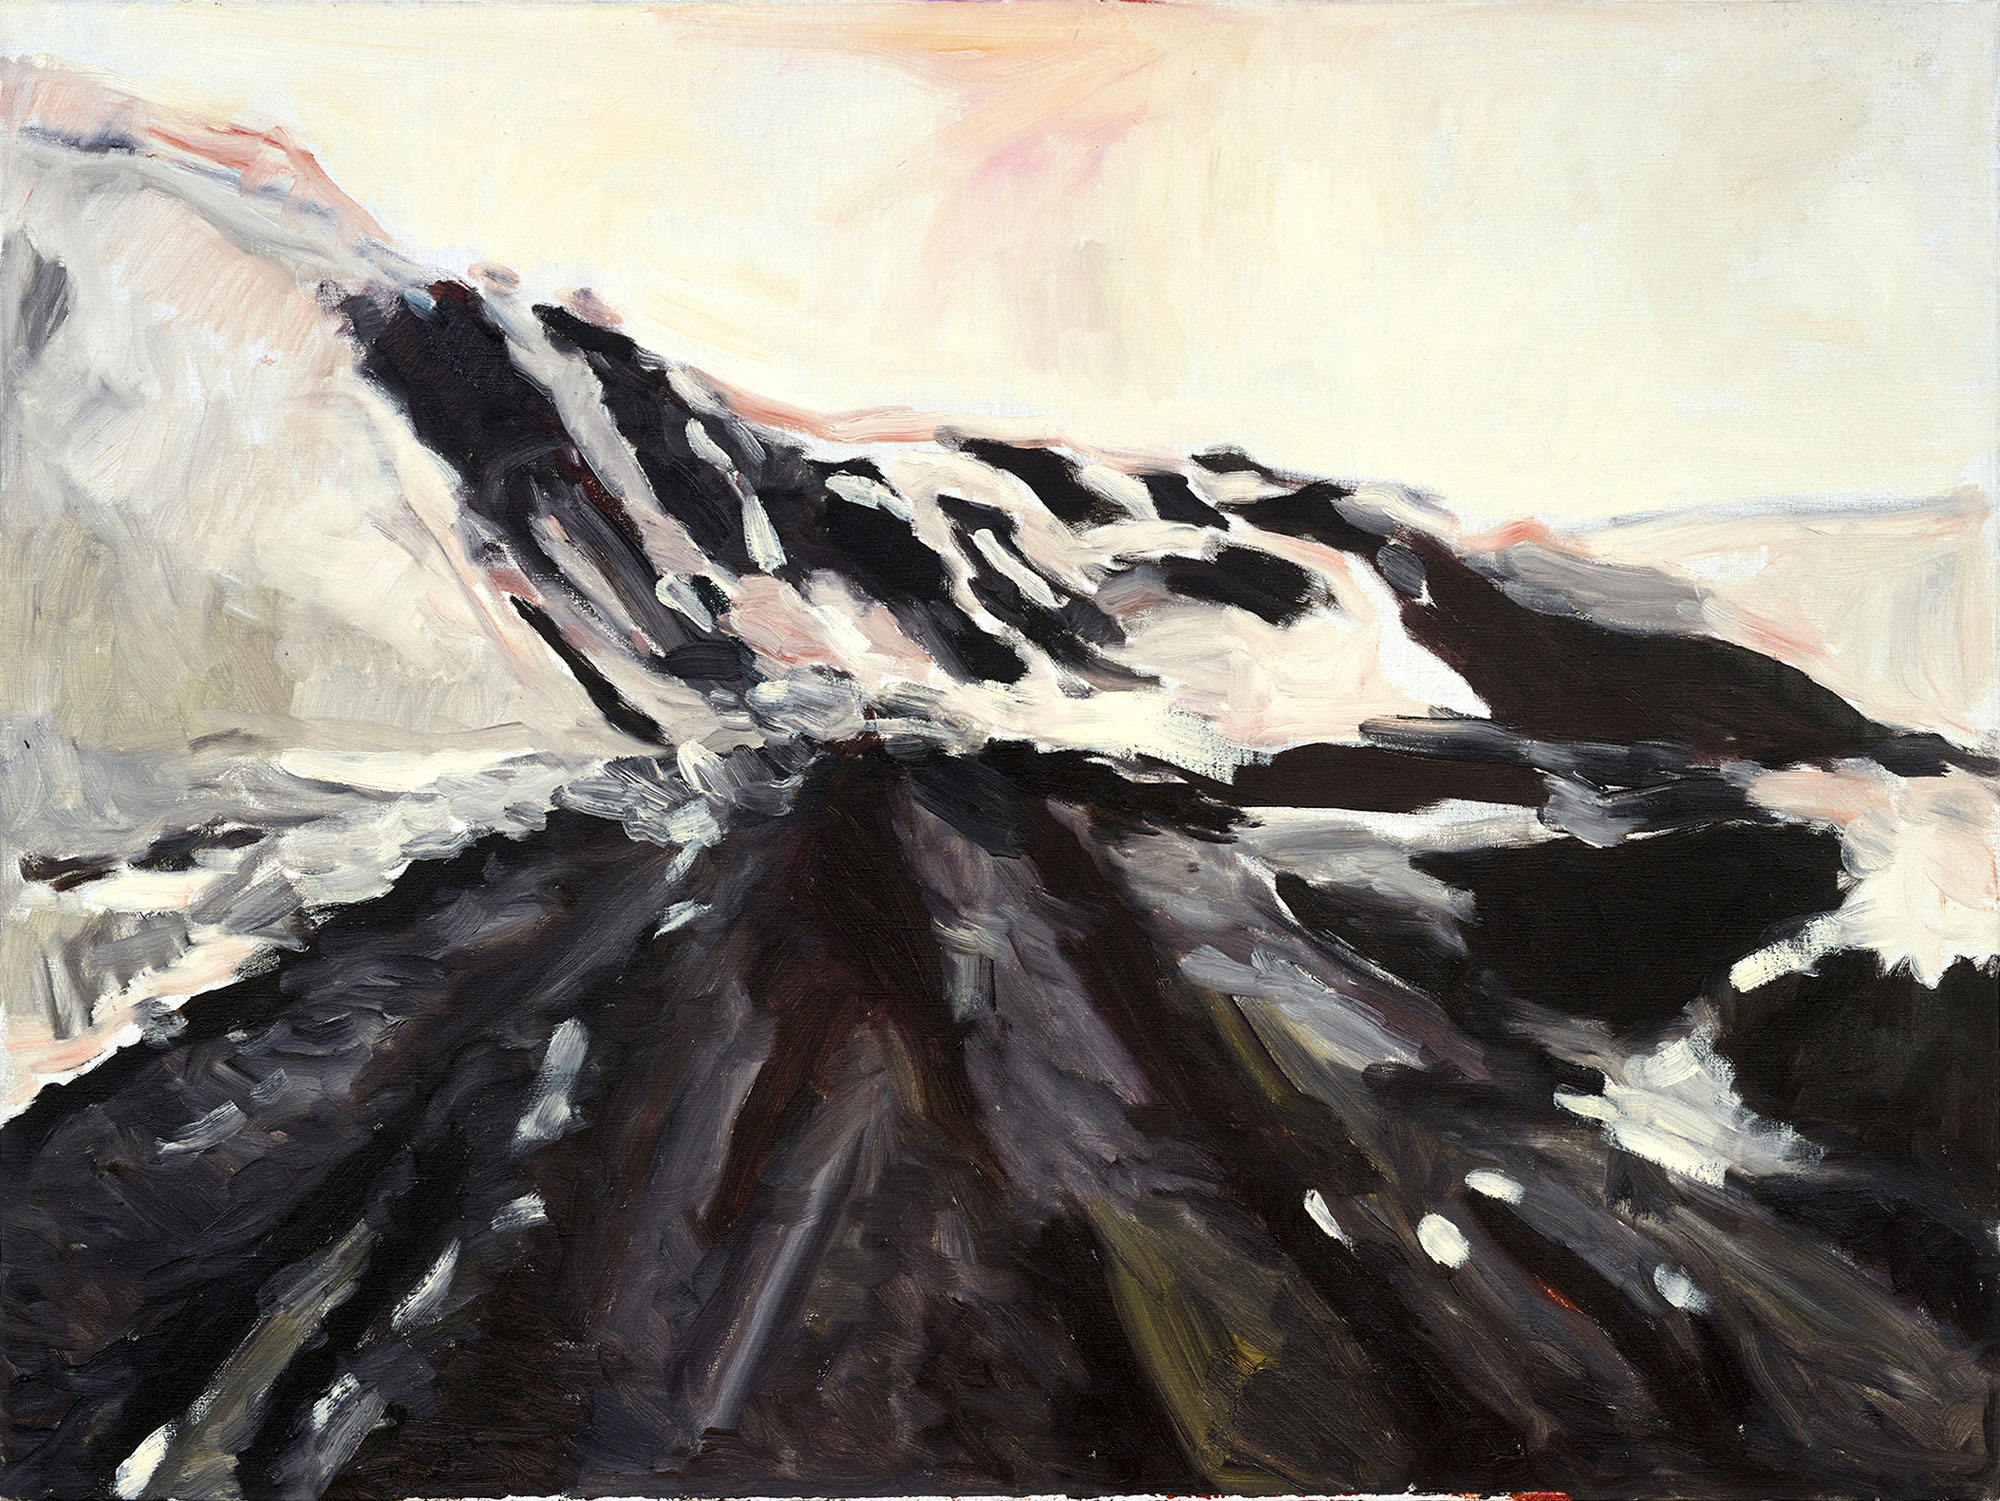 ZHAO GANG.   Untitled Landscape,  2006. Oil on canvas. 35 7/16 x 47 1/4 inches.  Courtesy the artist and Galerie Nagel, Draxler, Berlin/Cologne